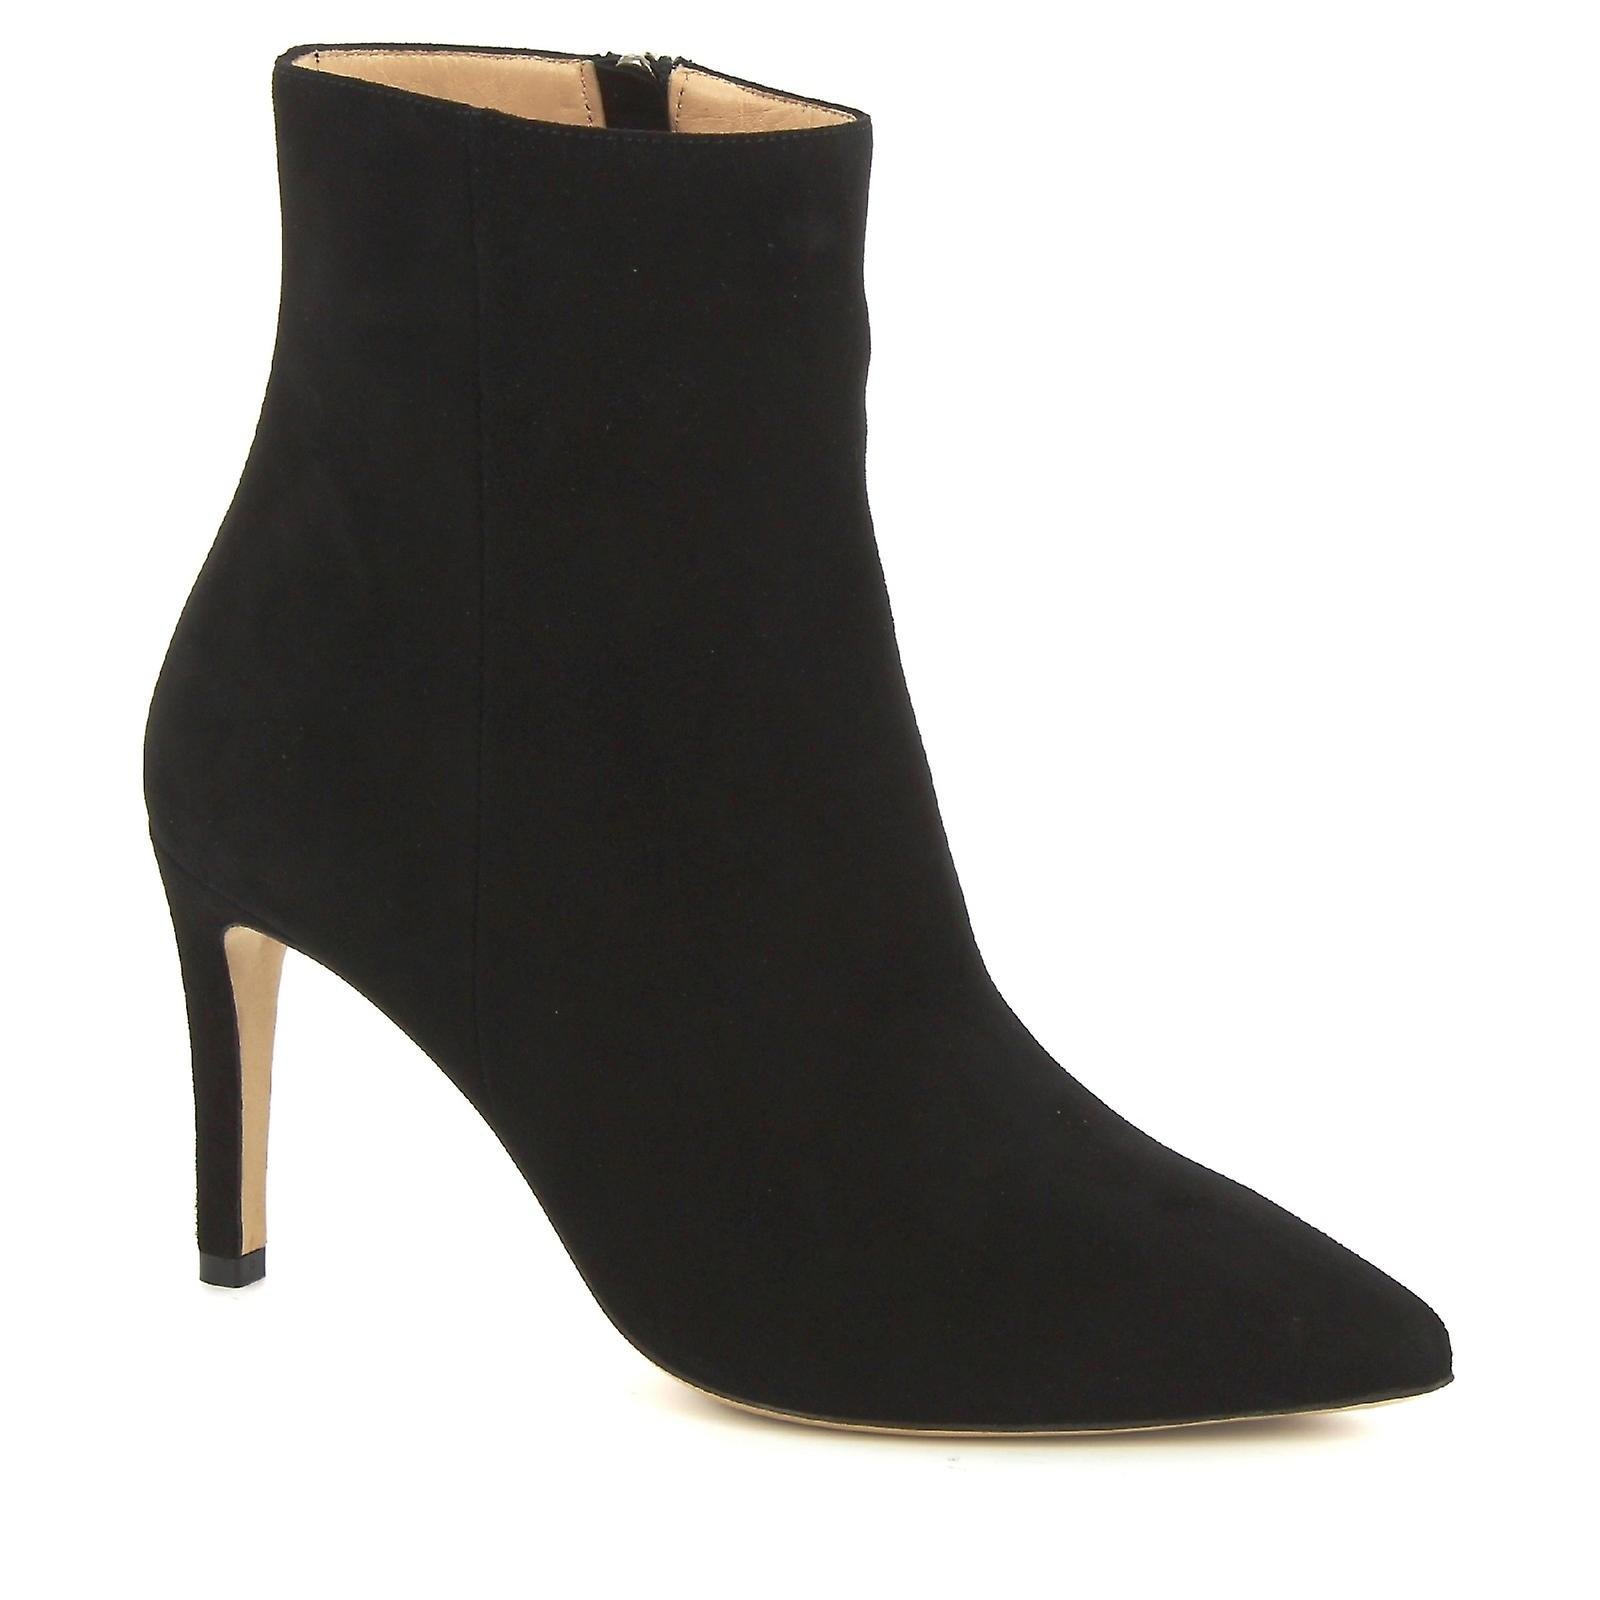 Leonardo Shoes Women's handmade heeled ankle boots in black suede leather